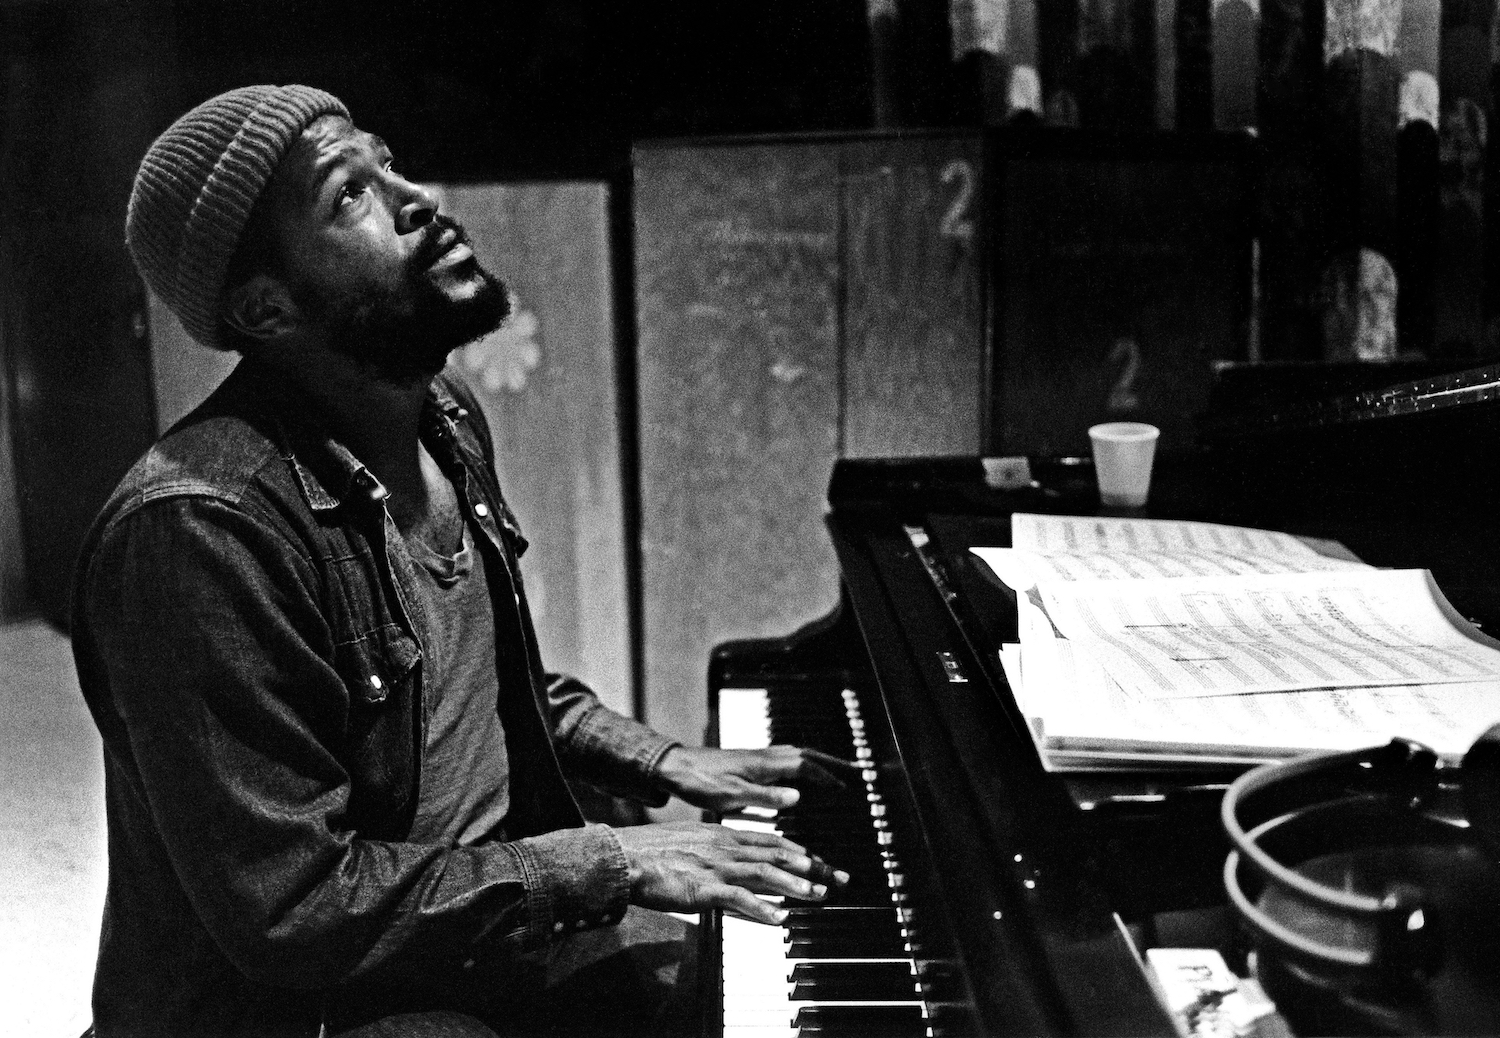 A Rare Instrumental Marvin Gaye Album has Surfaced